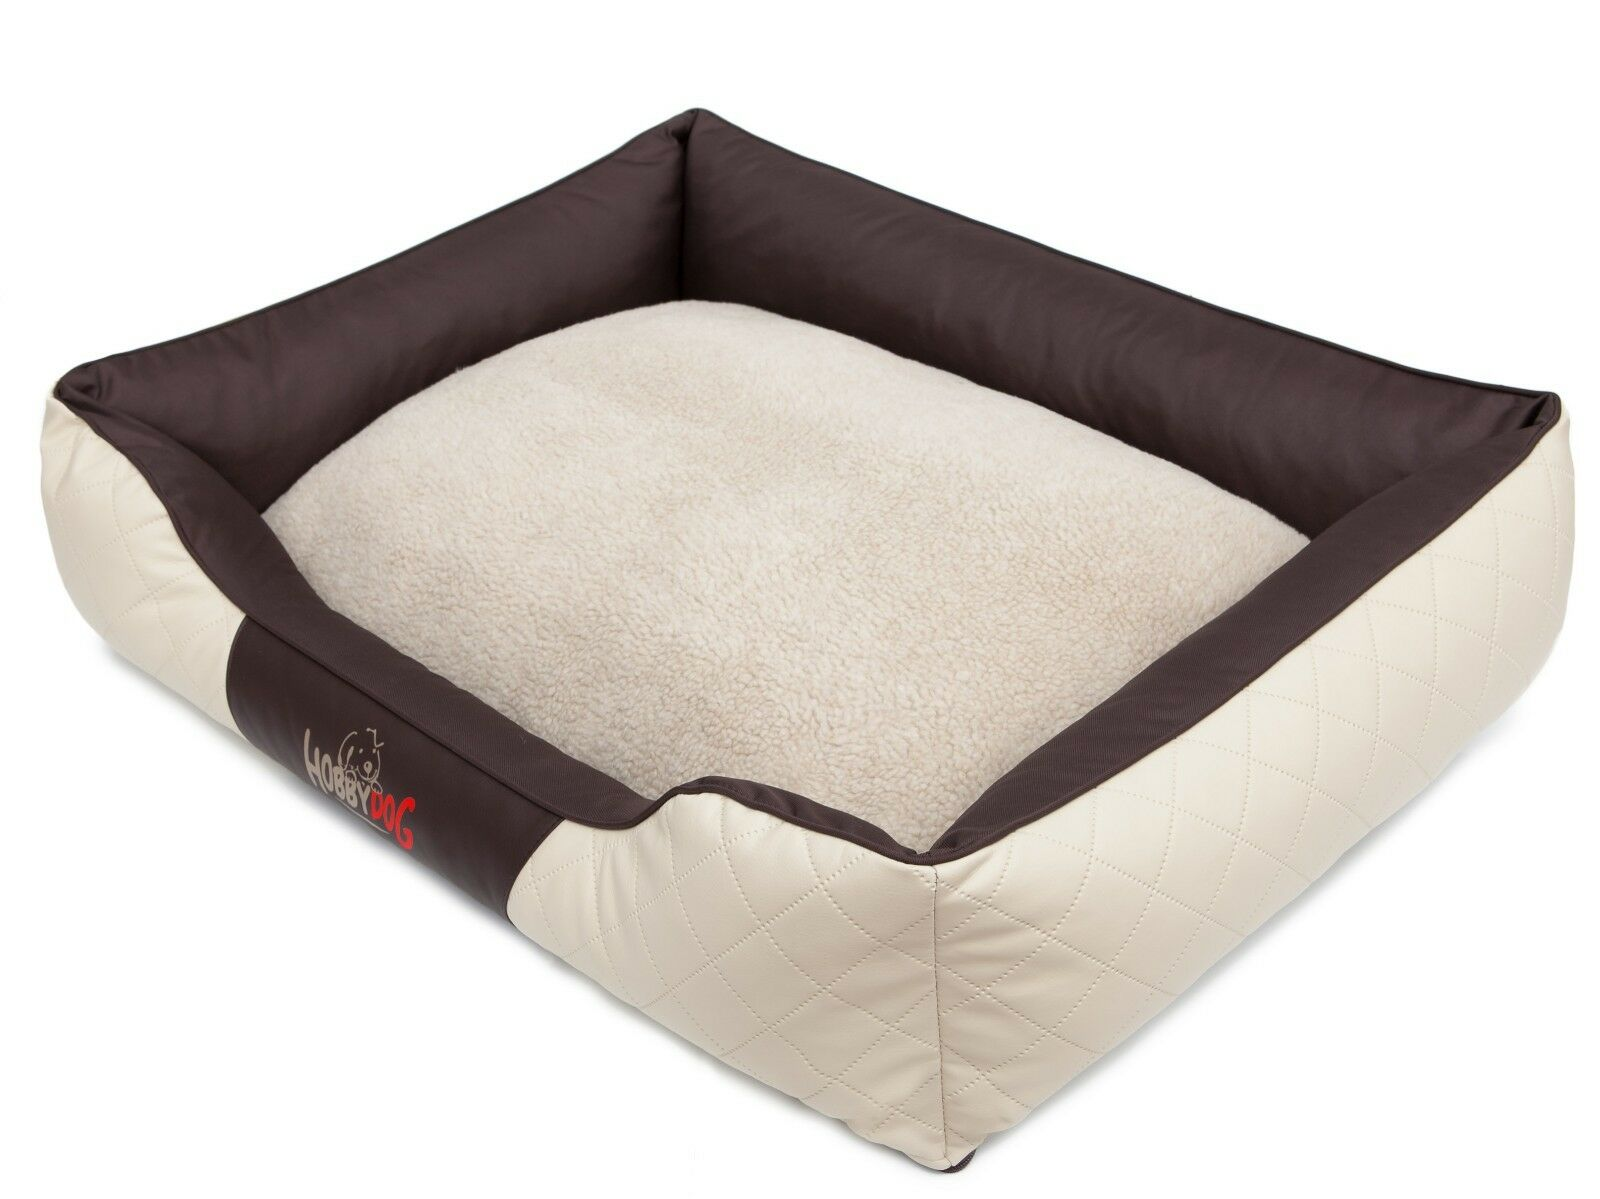 Hobbydog Cesar Exclusive Cani Tappetino dormire Cuccia Cuccia Cuccia per cani cuscino per cani Divano per cani ae99b8